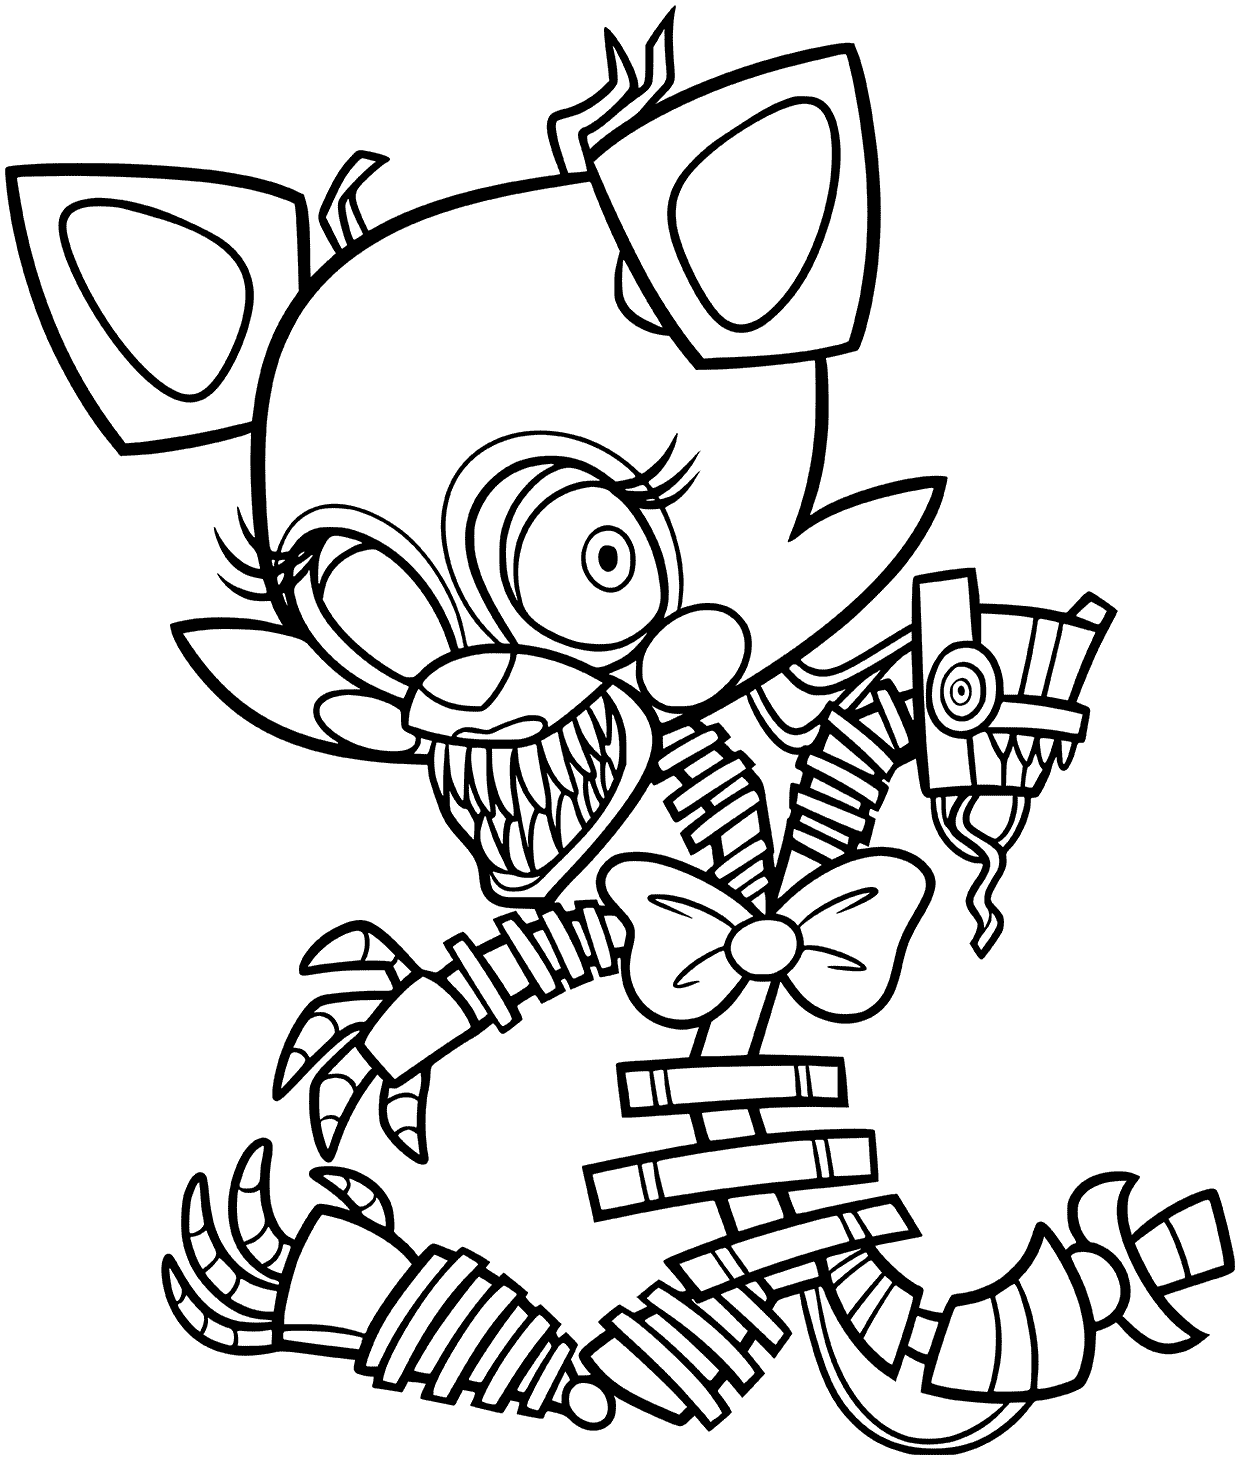 5 nights at freddys colouring pictures five nights at freddy39s coloring pages print and colorcom freddys colouring nights at 5 pictures